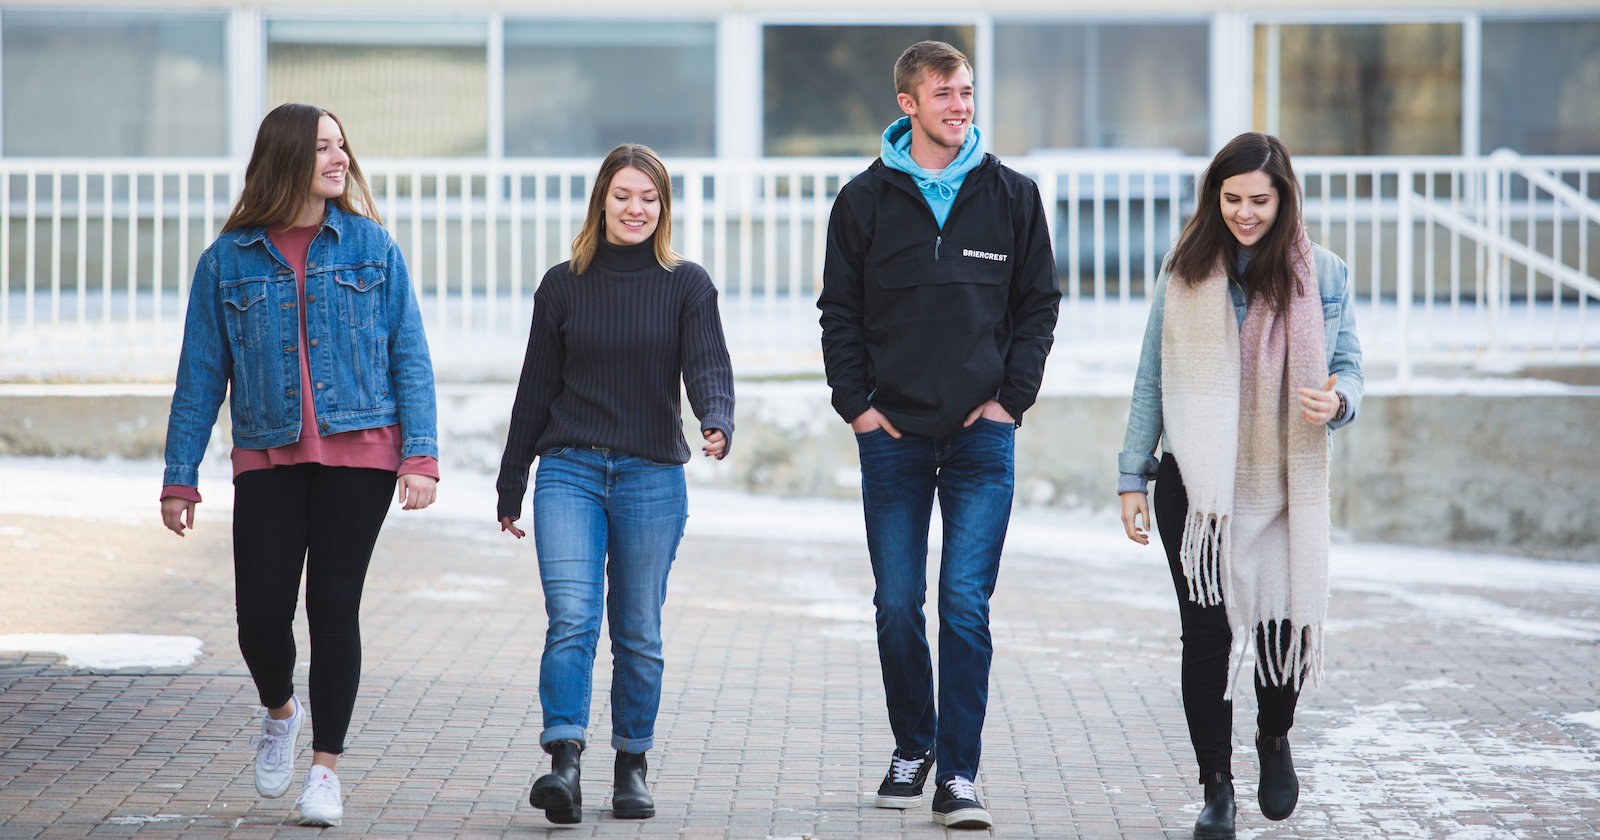 See what a life-changing education at Briercrest College could do for you.